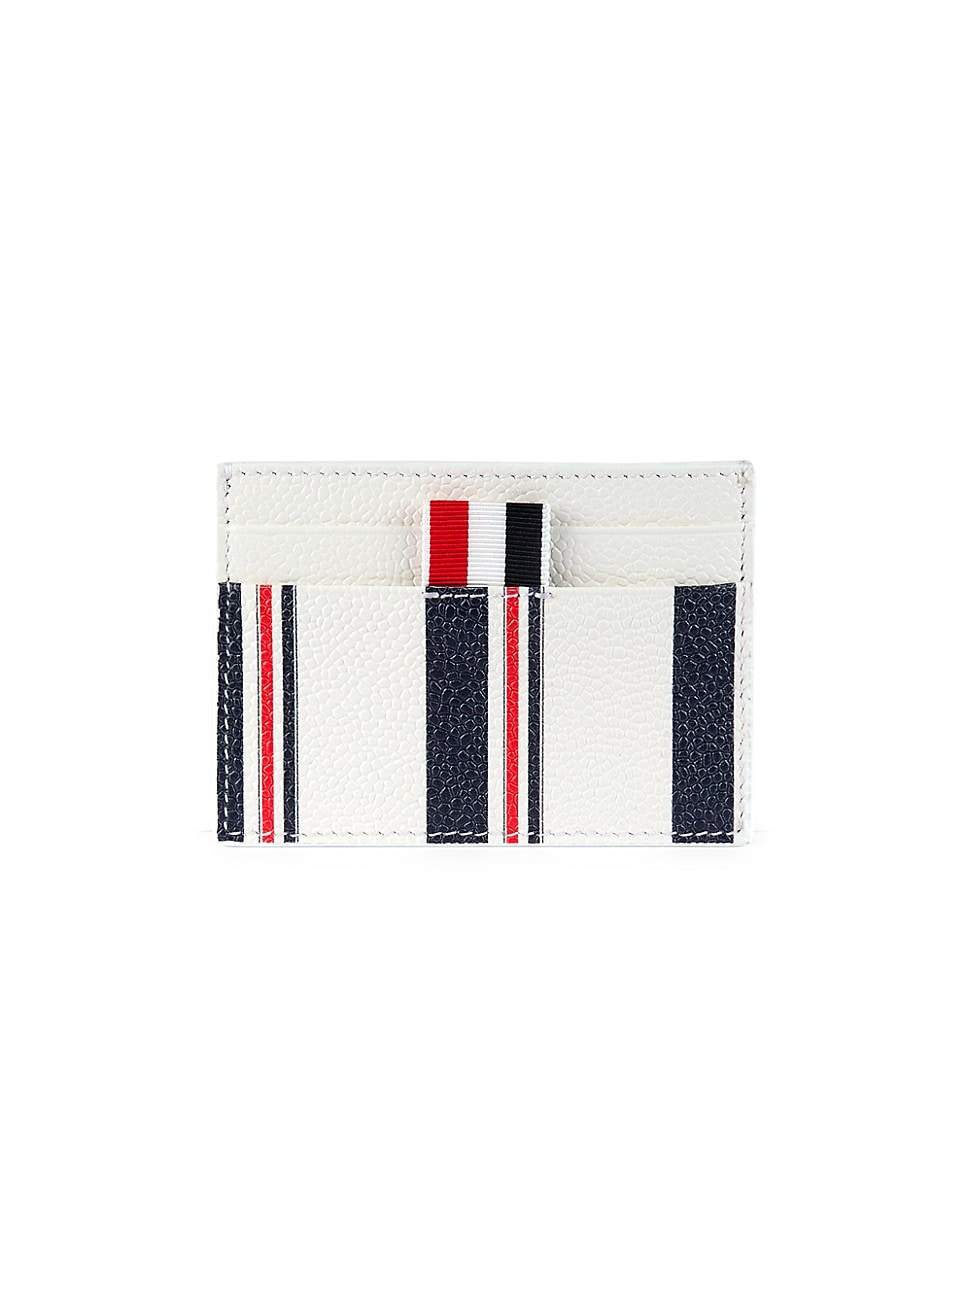 THOM BROWNE MEN'S DOUBLE-SIDED LEATHER CARD CASE